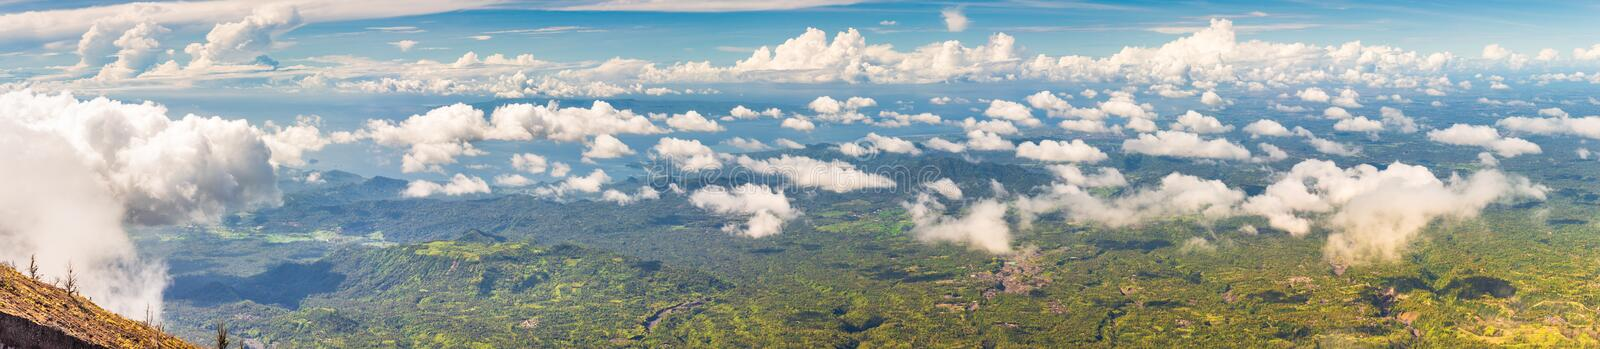 Panoramic view from a high green hill above the clouds to the sea, islands, rice terraces, fields and forests in indonesia, Agung. Panoramic view from a high royalty free stock photo